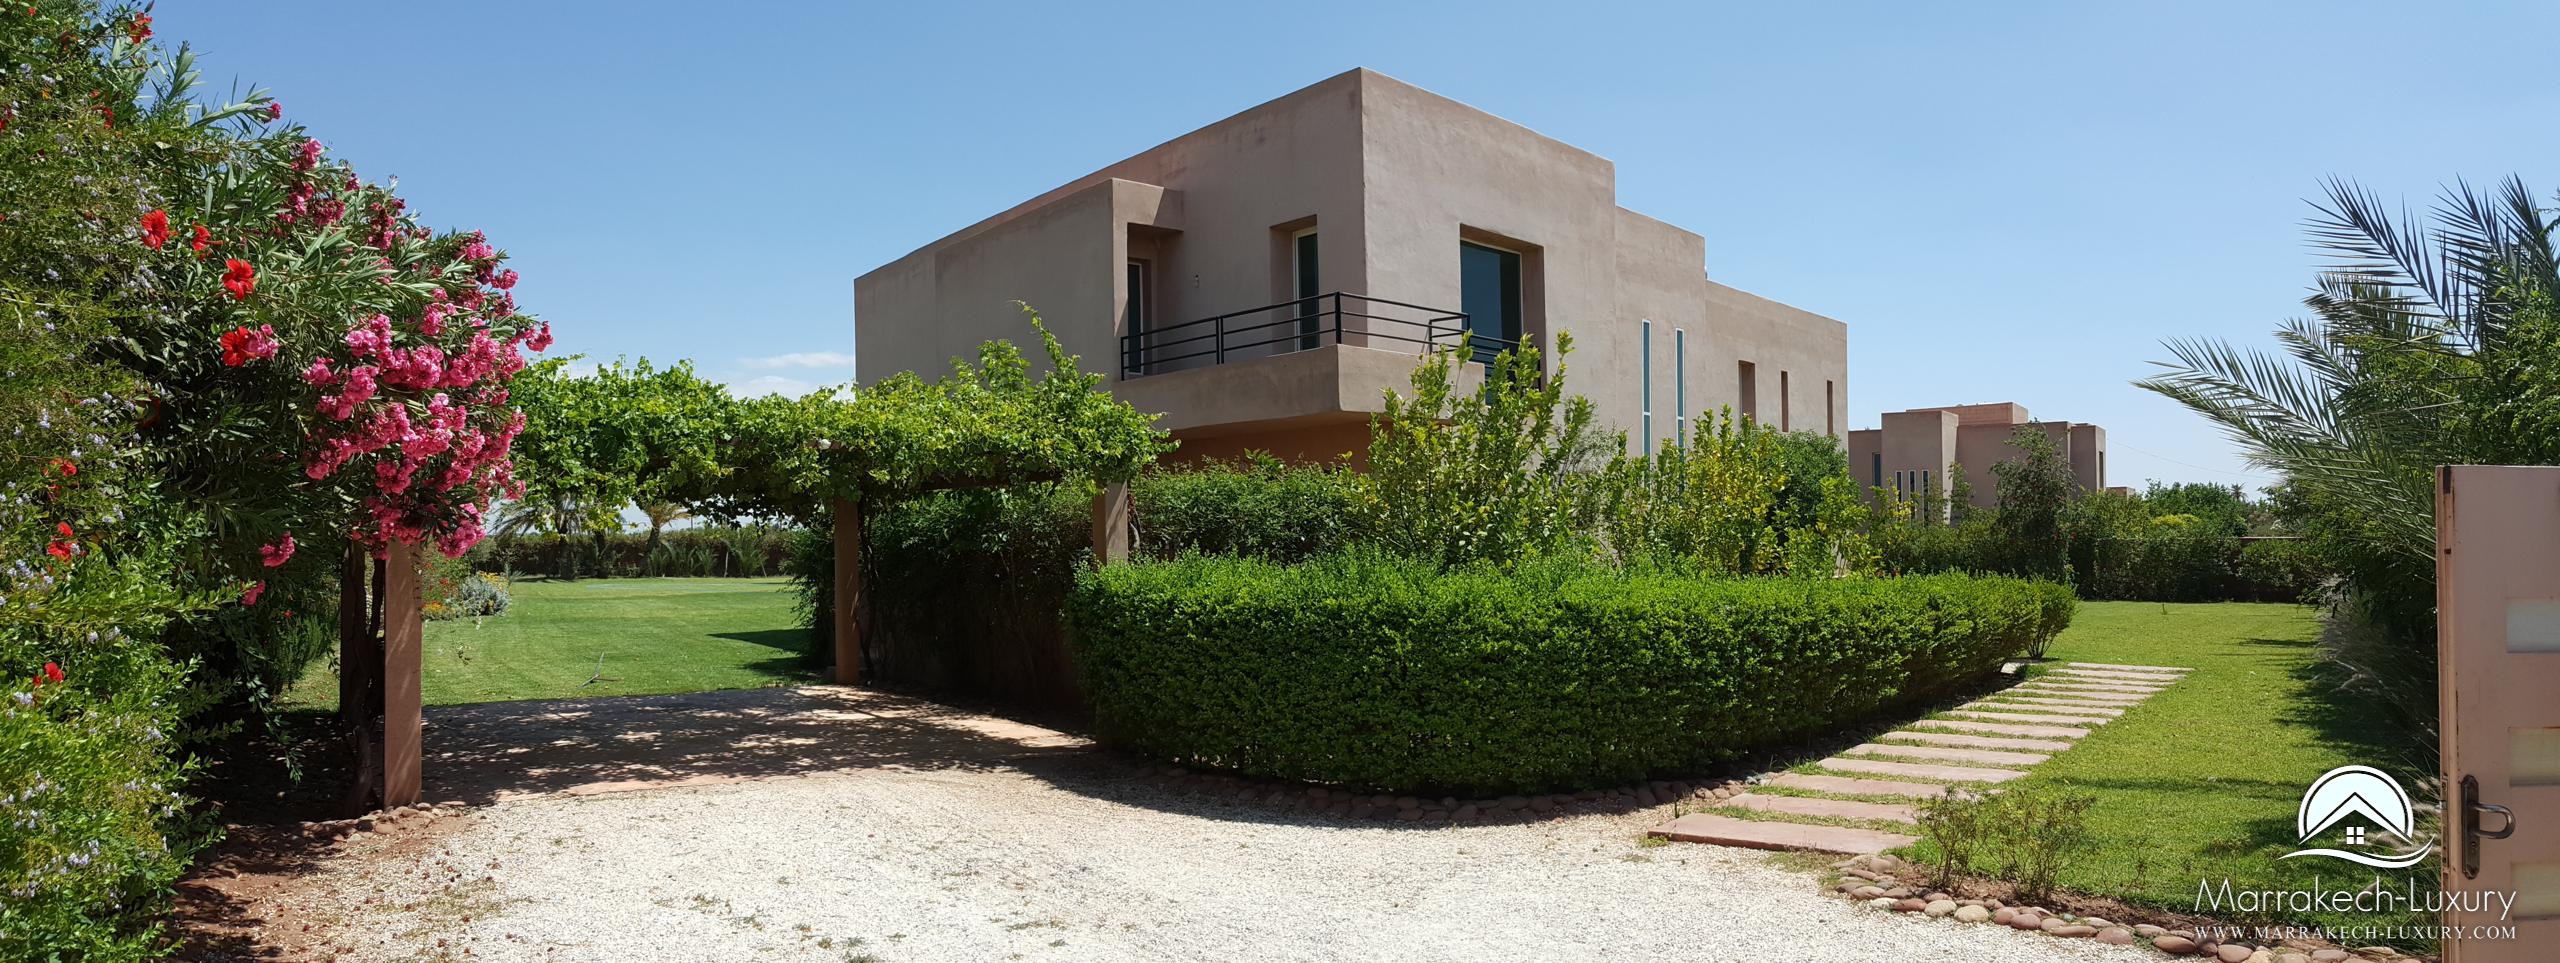 Vilalbab1005ma 37 agence immobili re marrakech acheter for Agence immobiliere 37